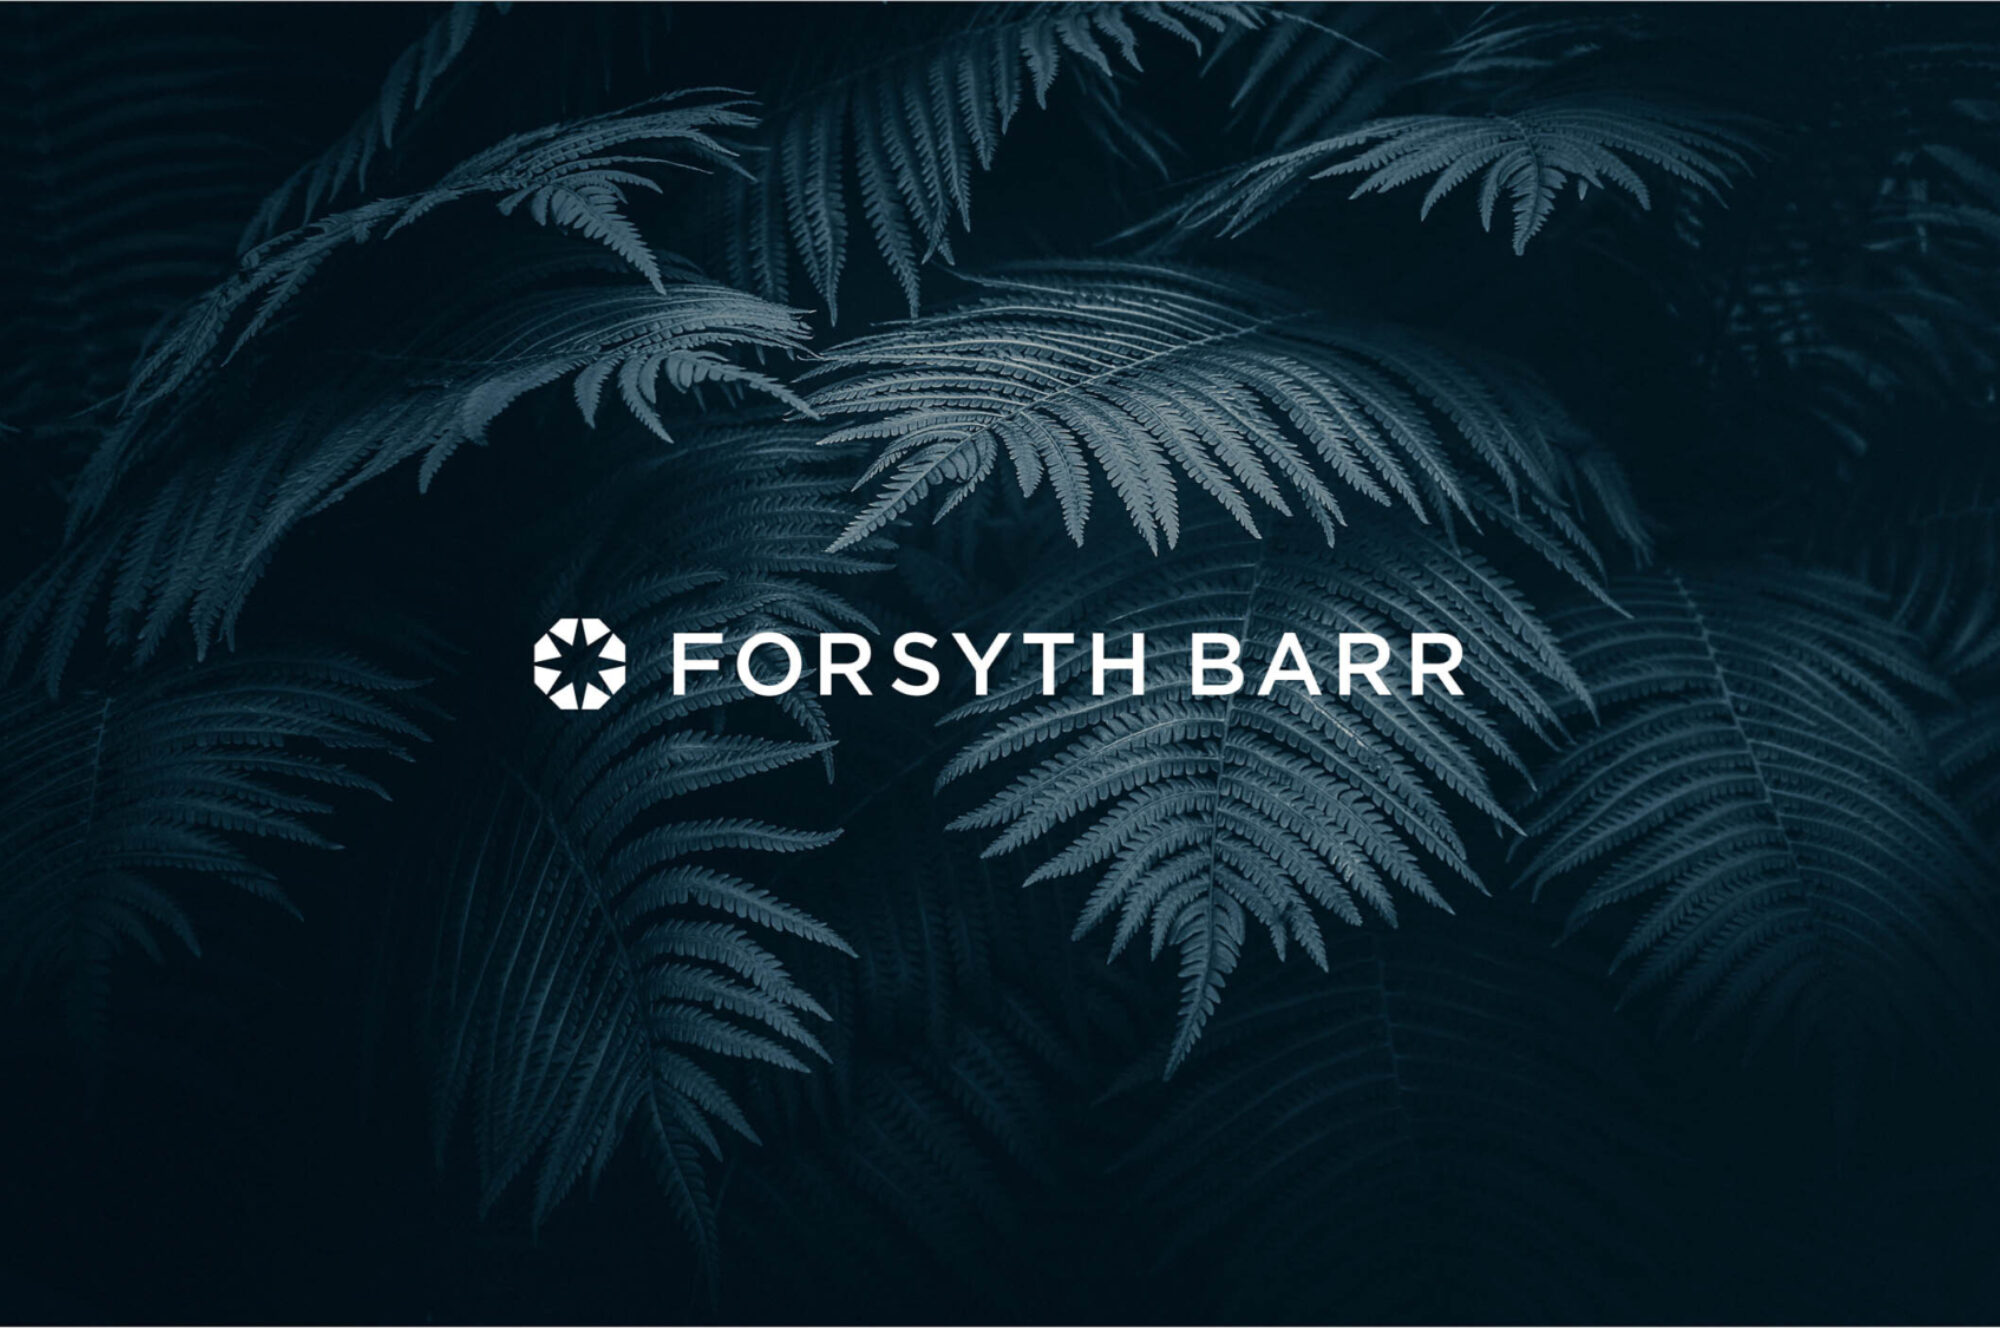 Forsyth Barr digital and brand refresh